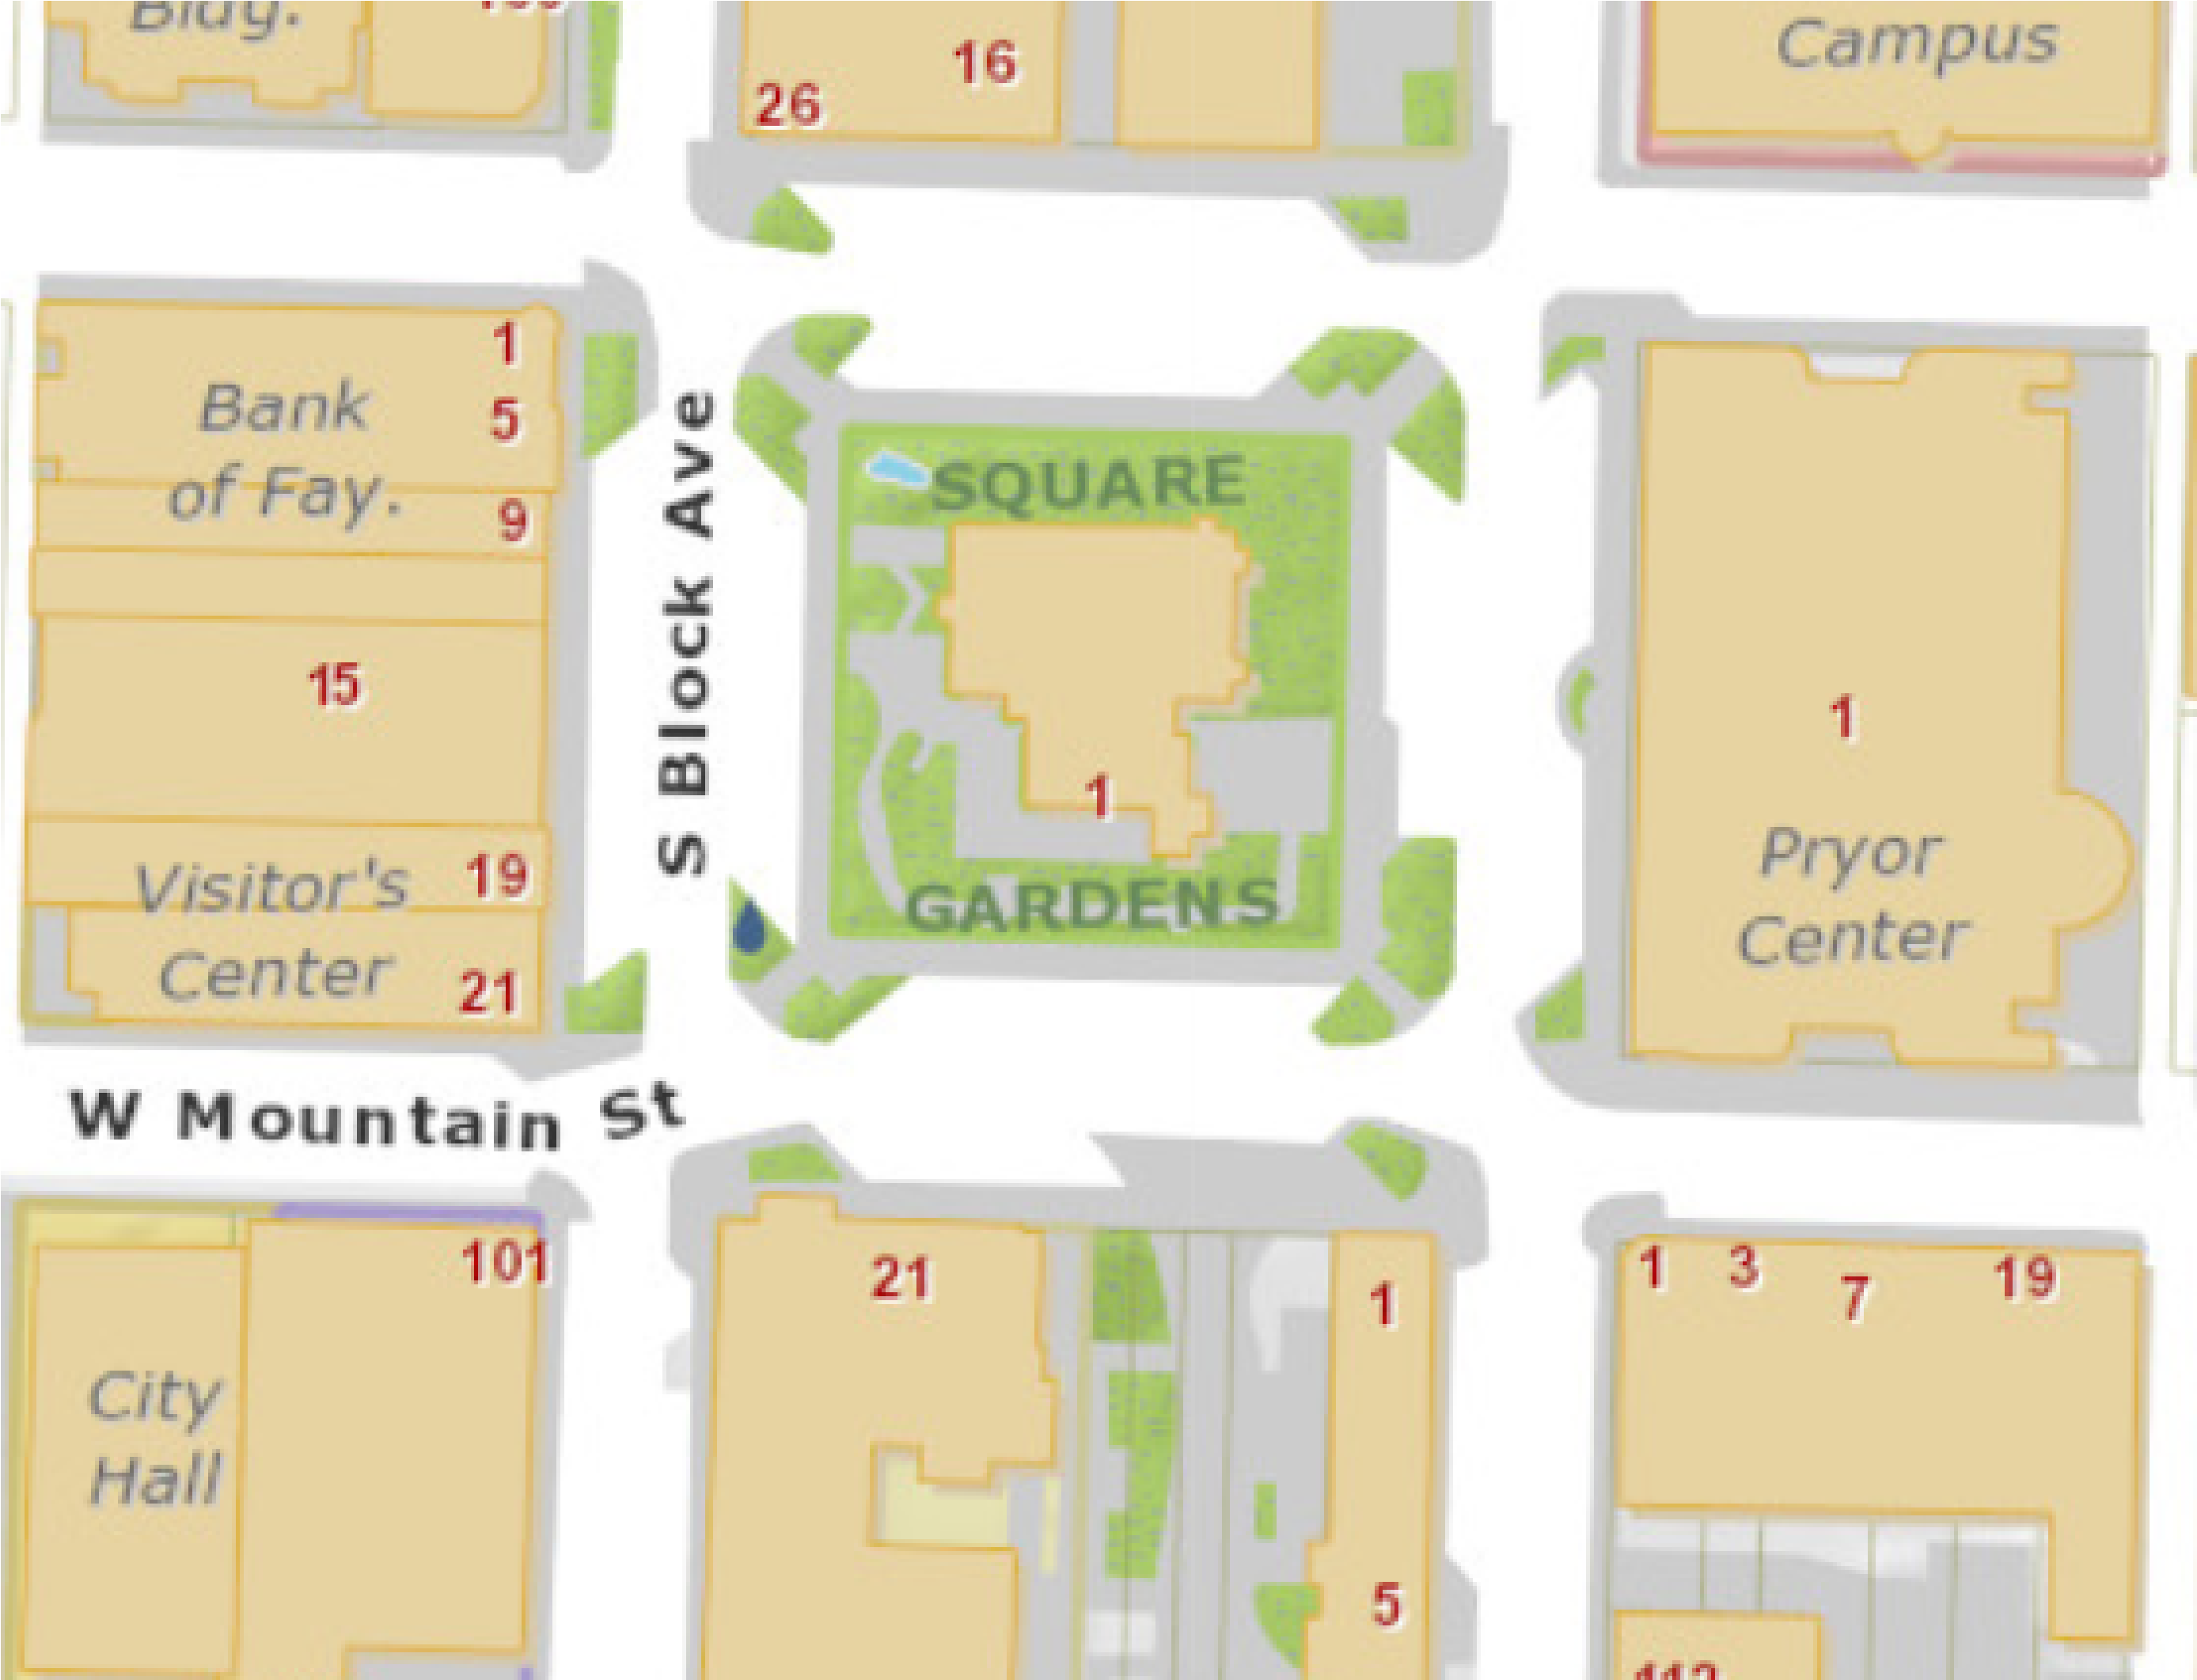 Map showing location of Square Gardens